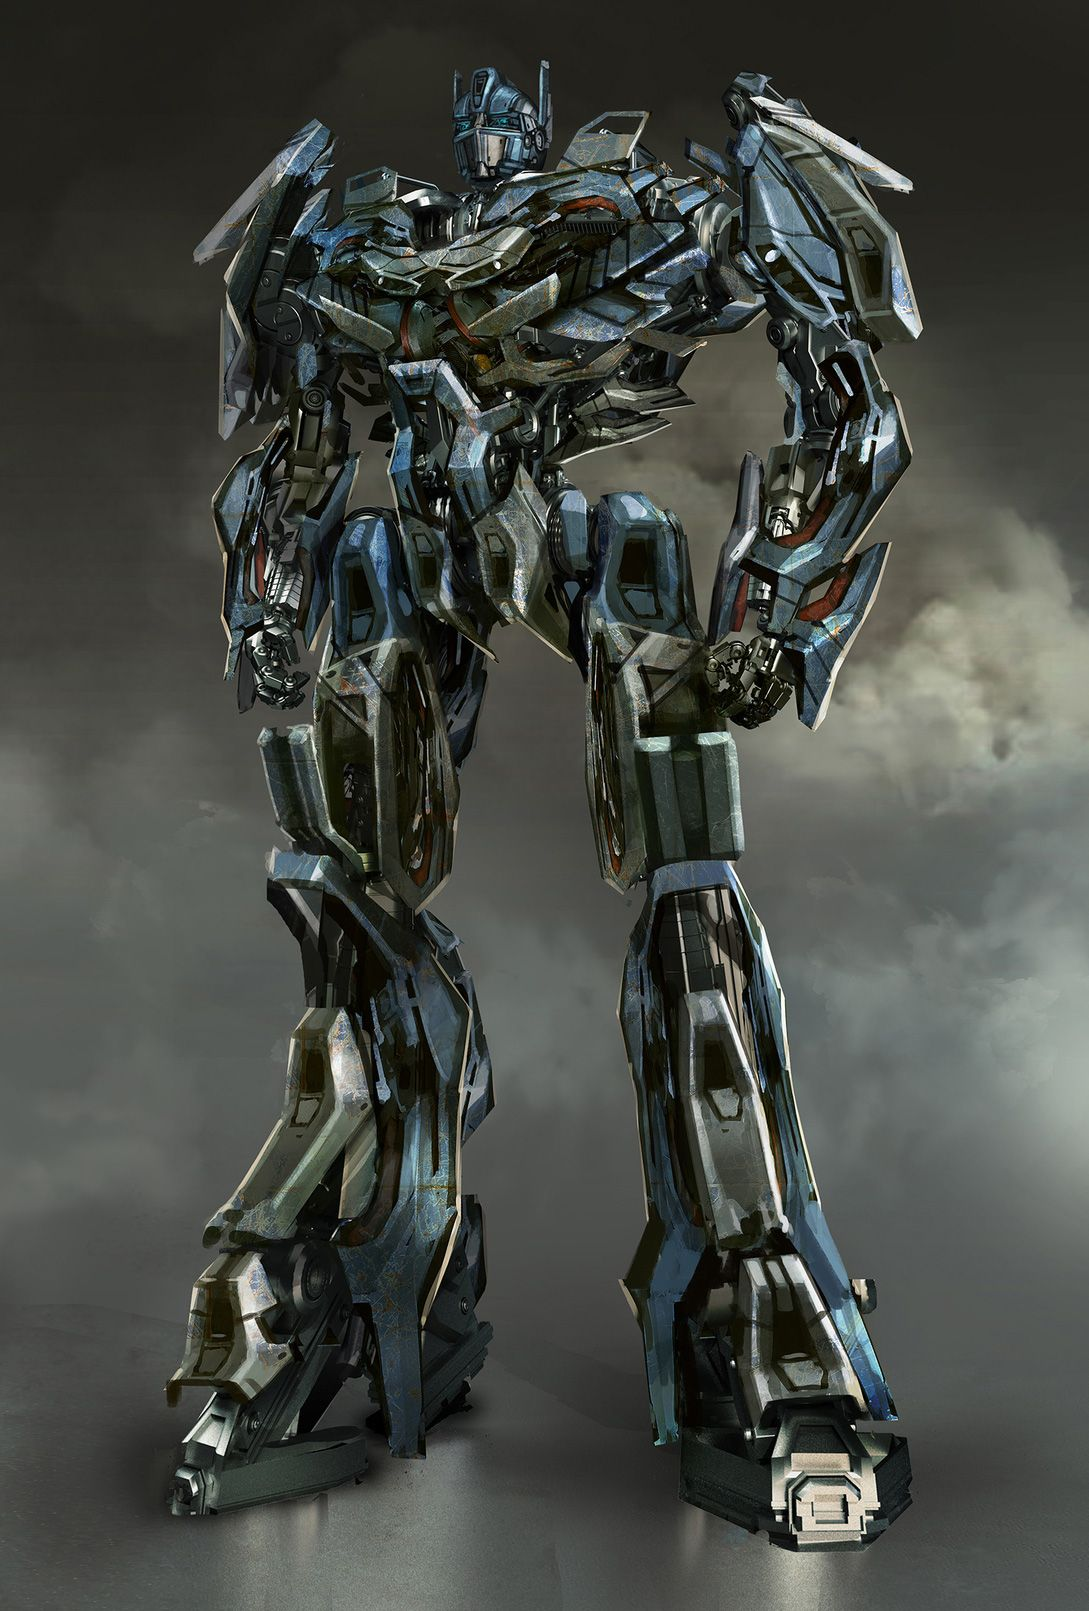 transformers age of extinction - Bing Images